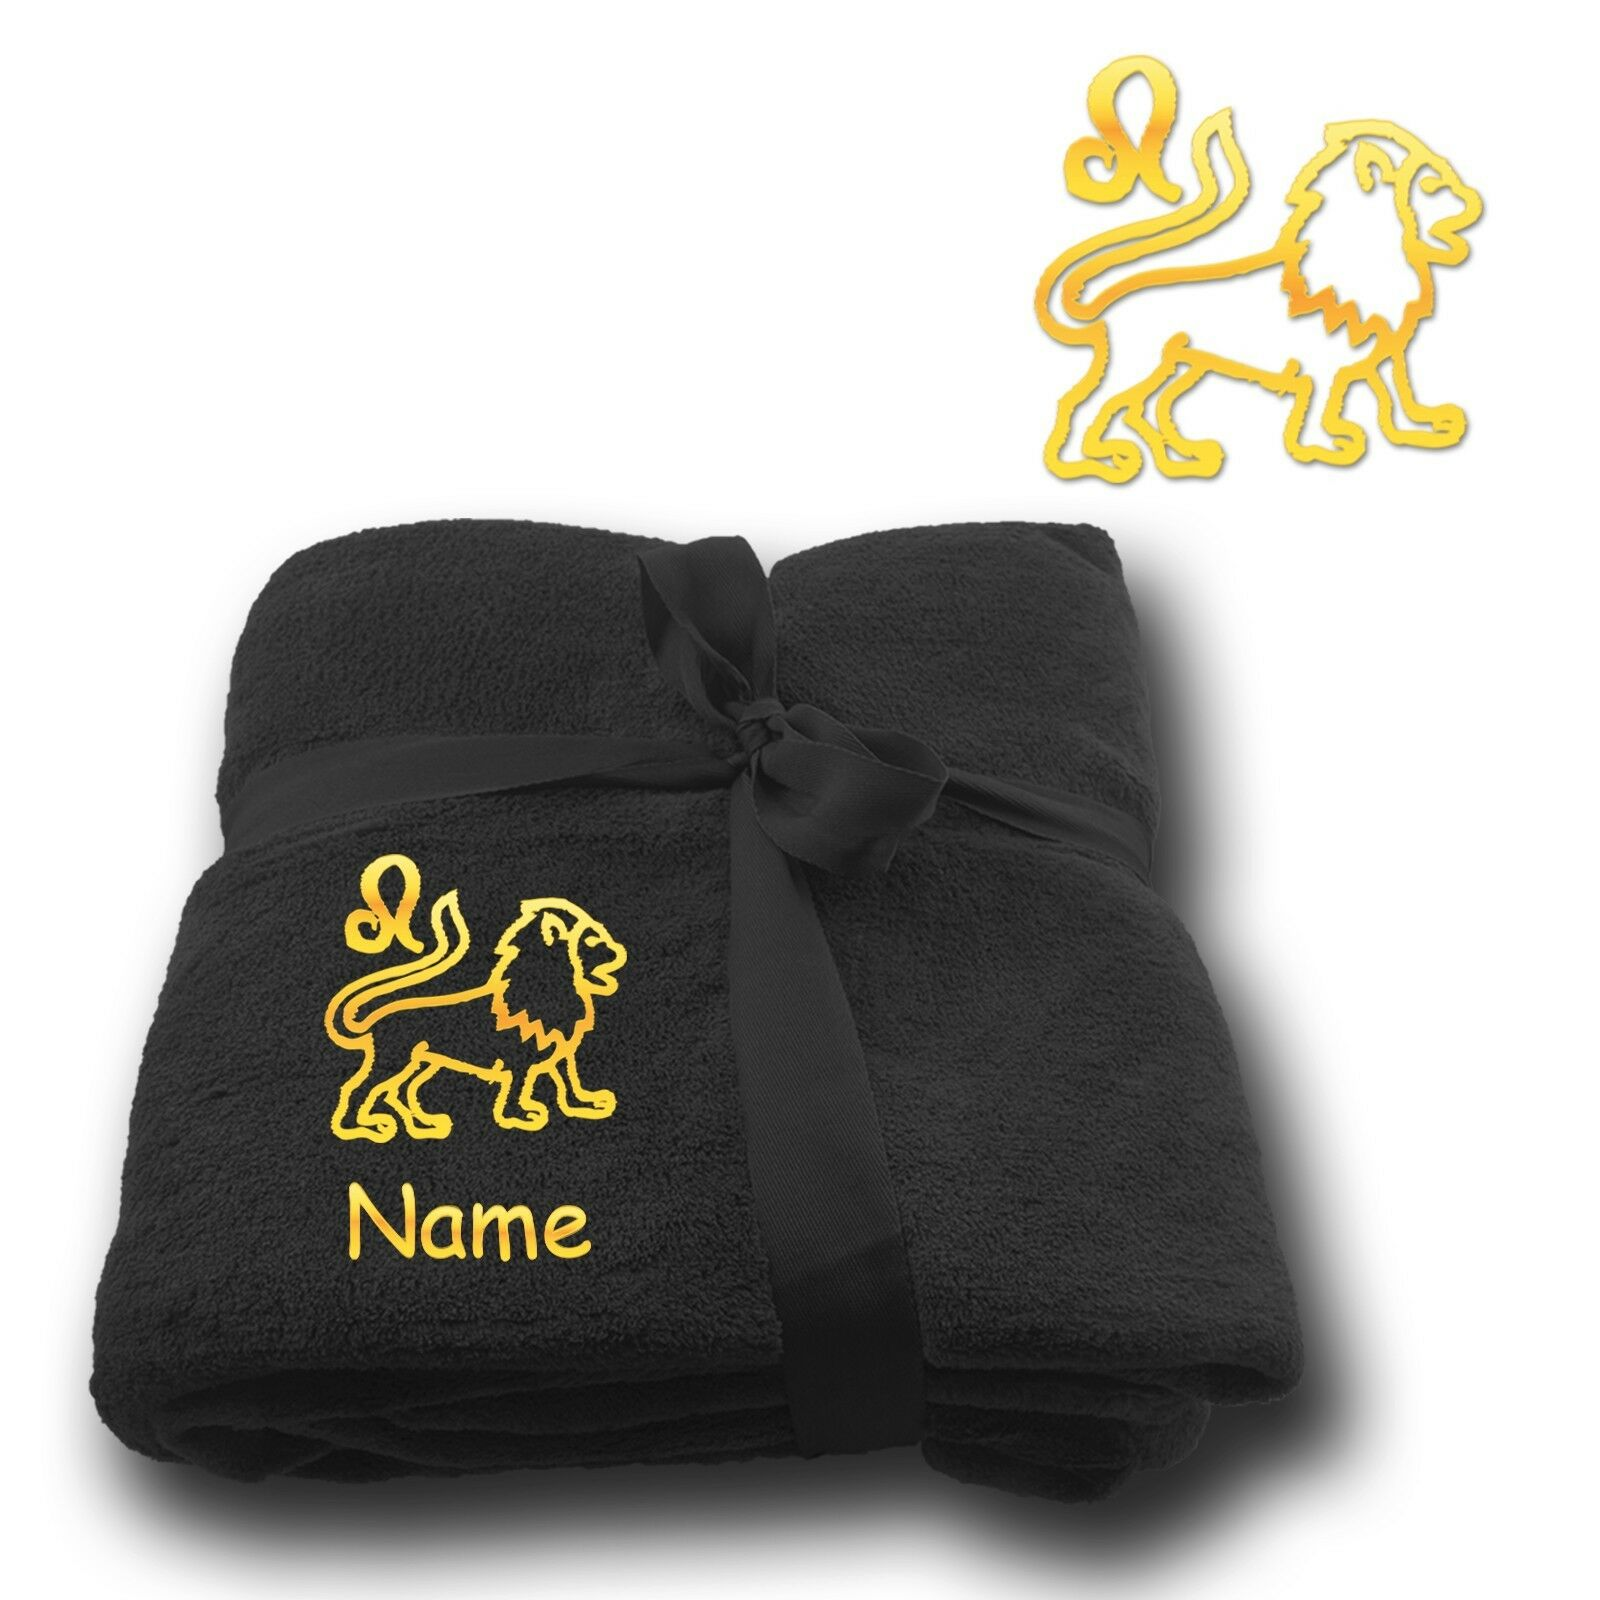 Fleecy Cuddle Blanket Embroidery Astrological Sign Leo + Name